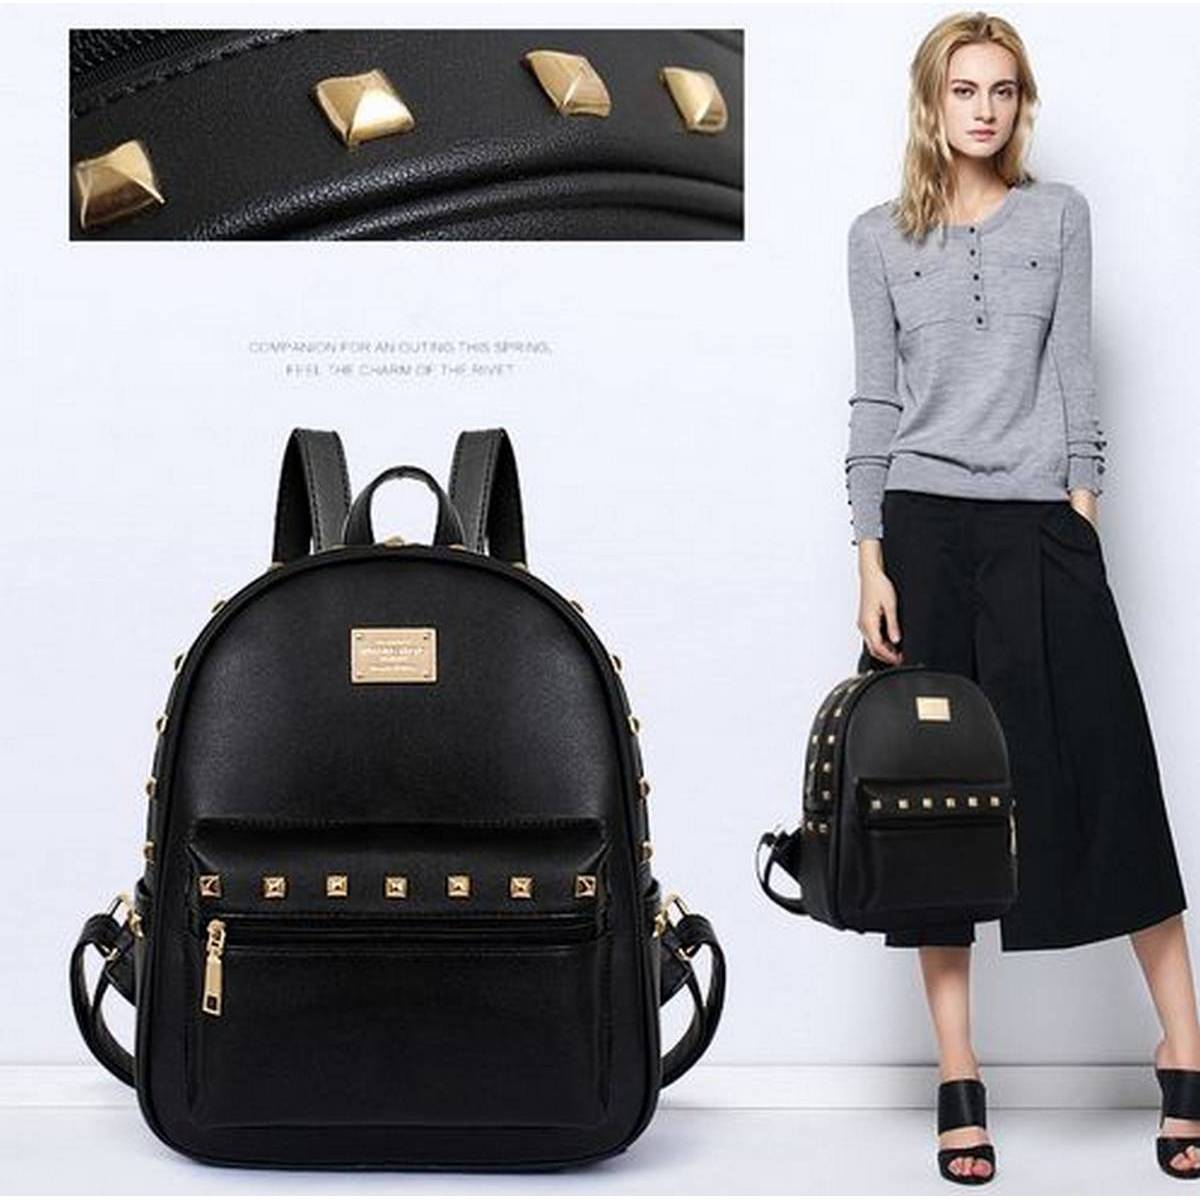 Girls School Bag, Leather Fancy and Stylish shoulder backpack, bags for school and college girls